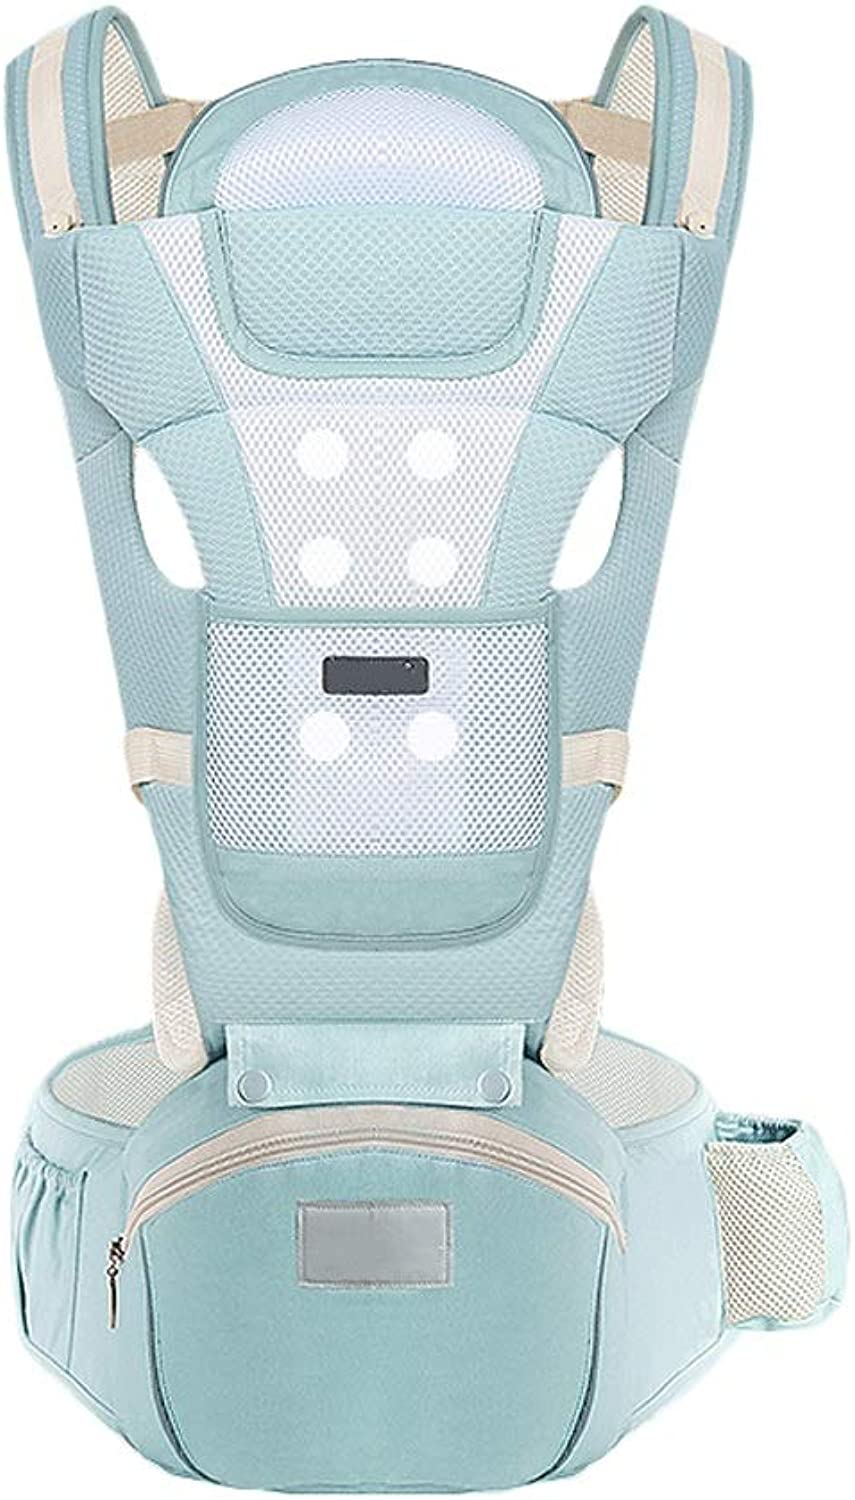 Multifunctional Baby Carrier Hip seat Baby Backpack 0-36 Months Cotton Storage Breathable (color   B)